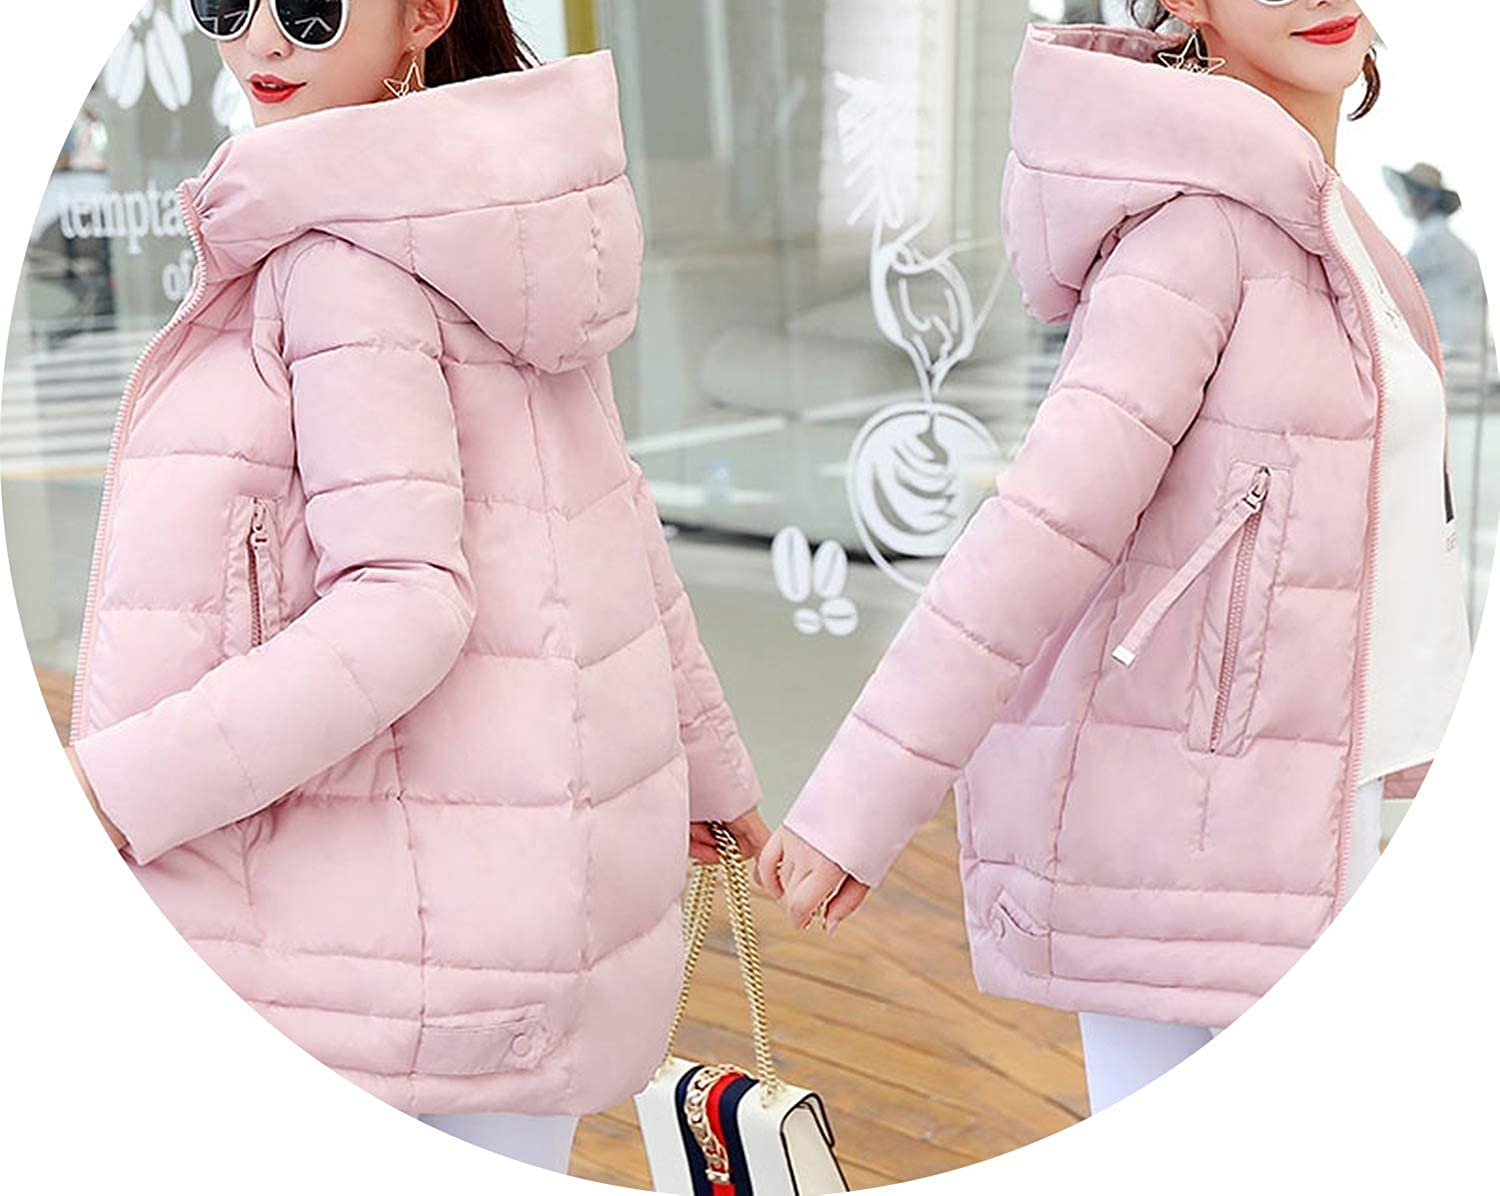 Barry-Story Cotton Coat Irregular Winter Jacket Women Plus Size Womens Parkas Thicken Outerwear Solid Hooded Coats